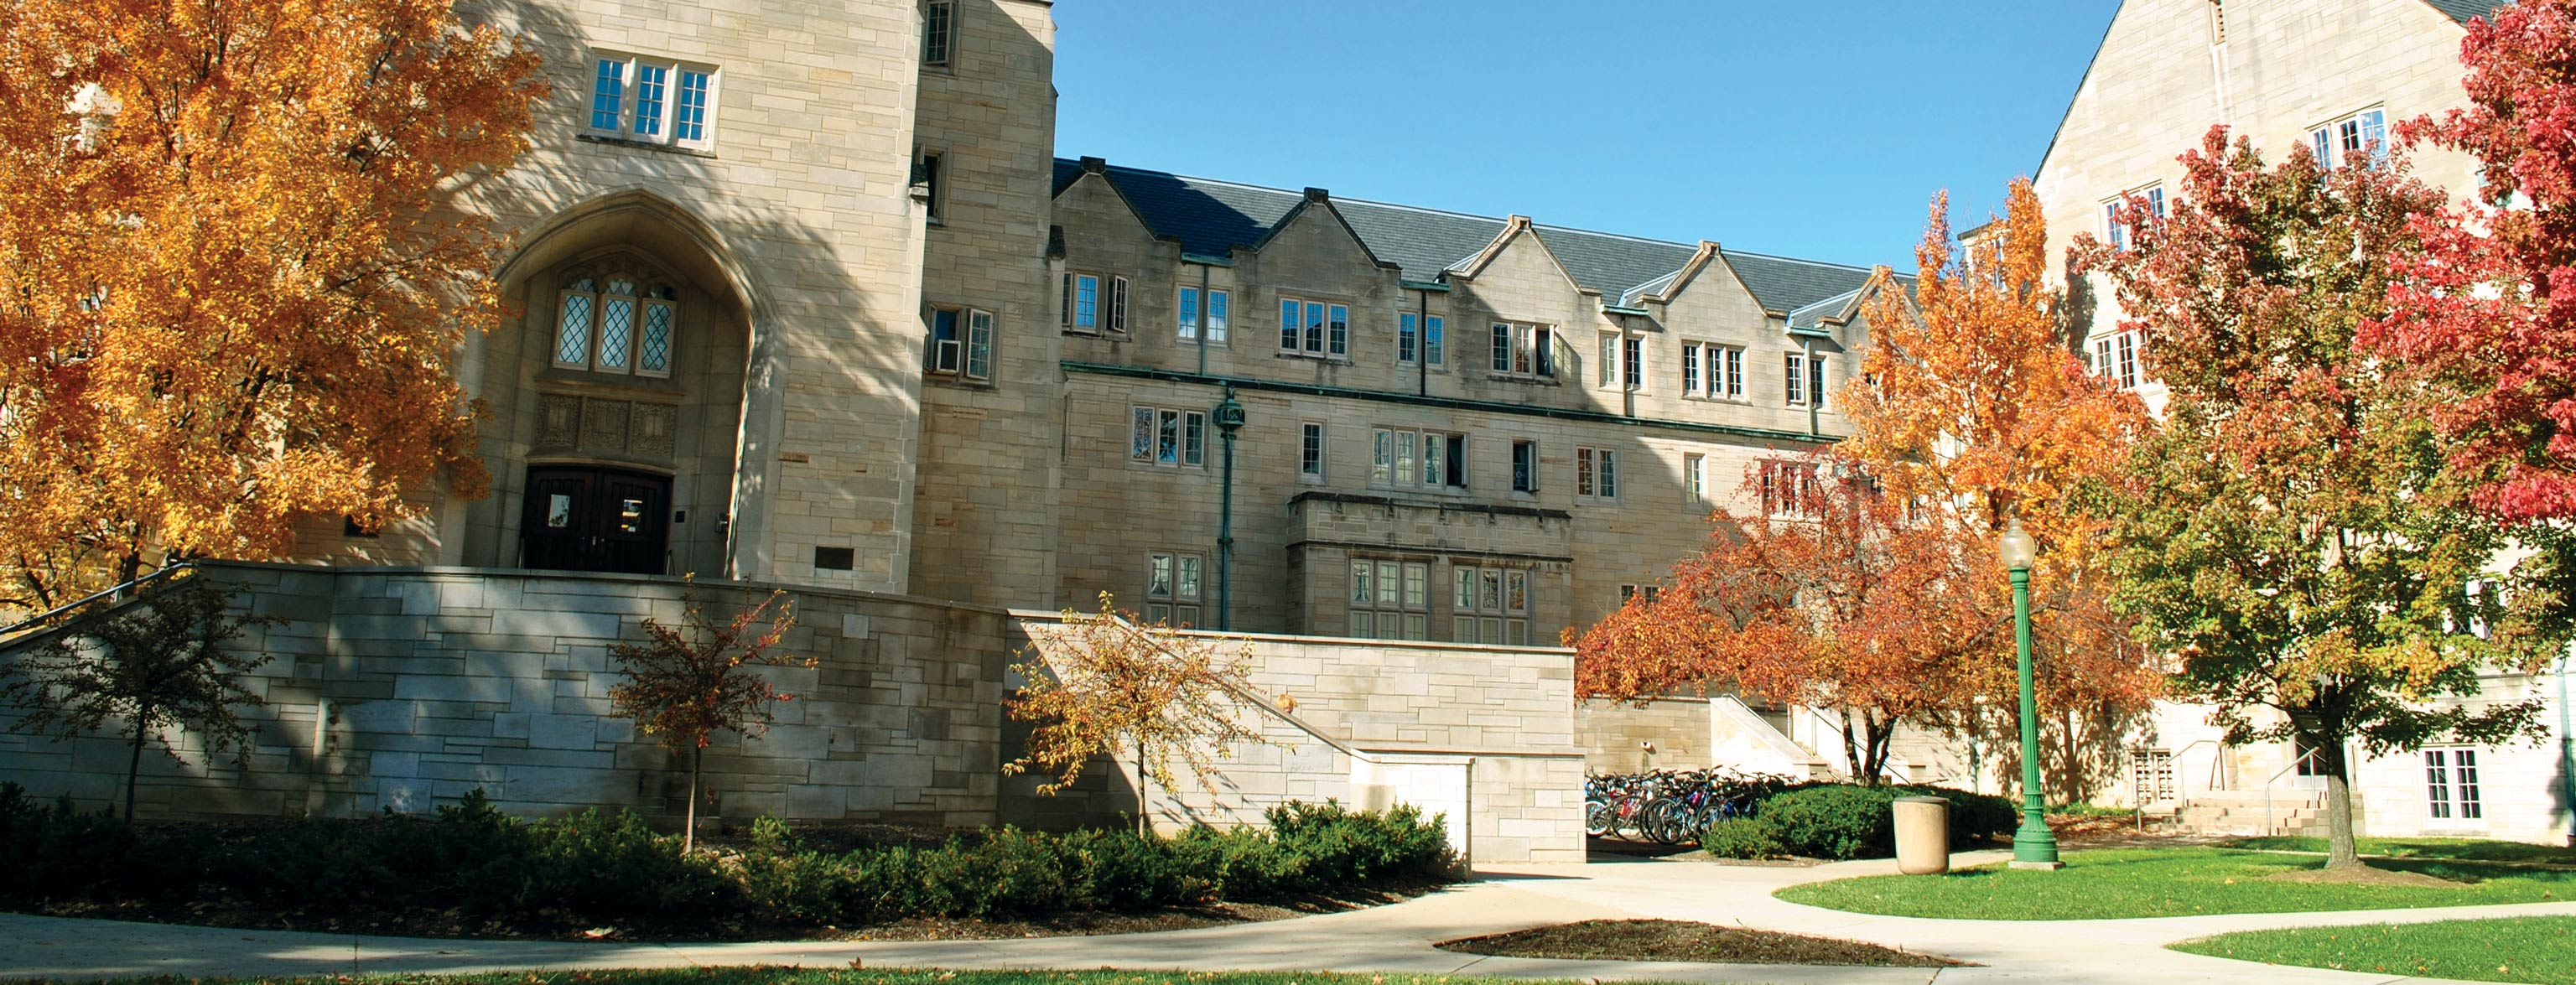 The exterior of Collins Living-Learning Center in the fall when the leaves on its courtyard trees are red. orange, and green